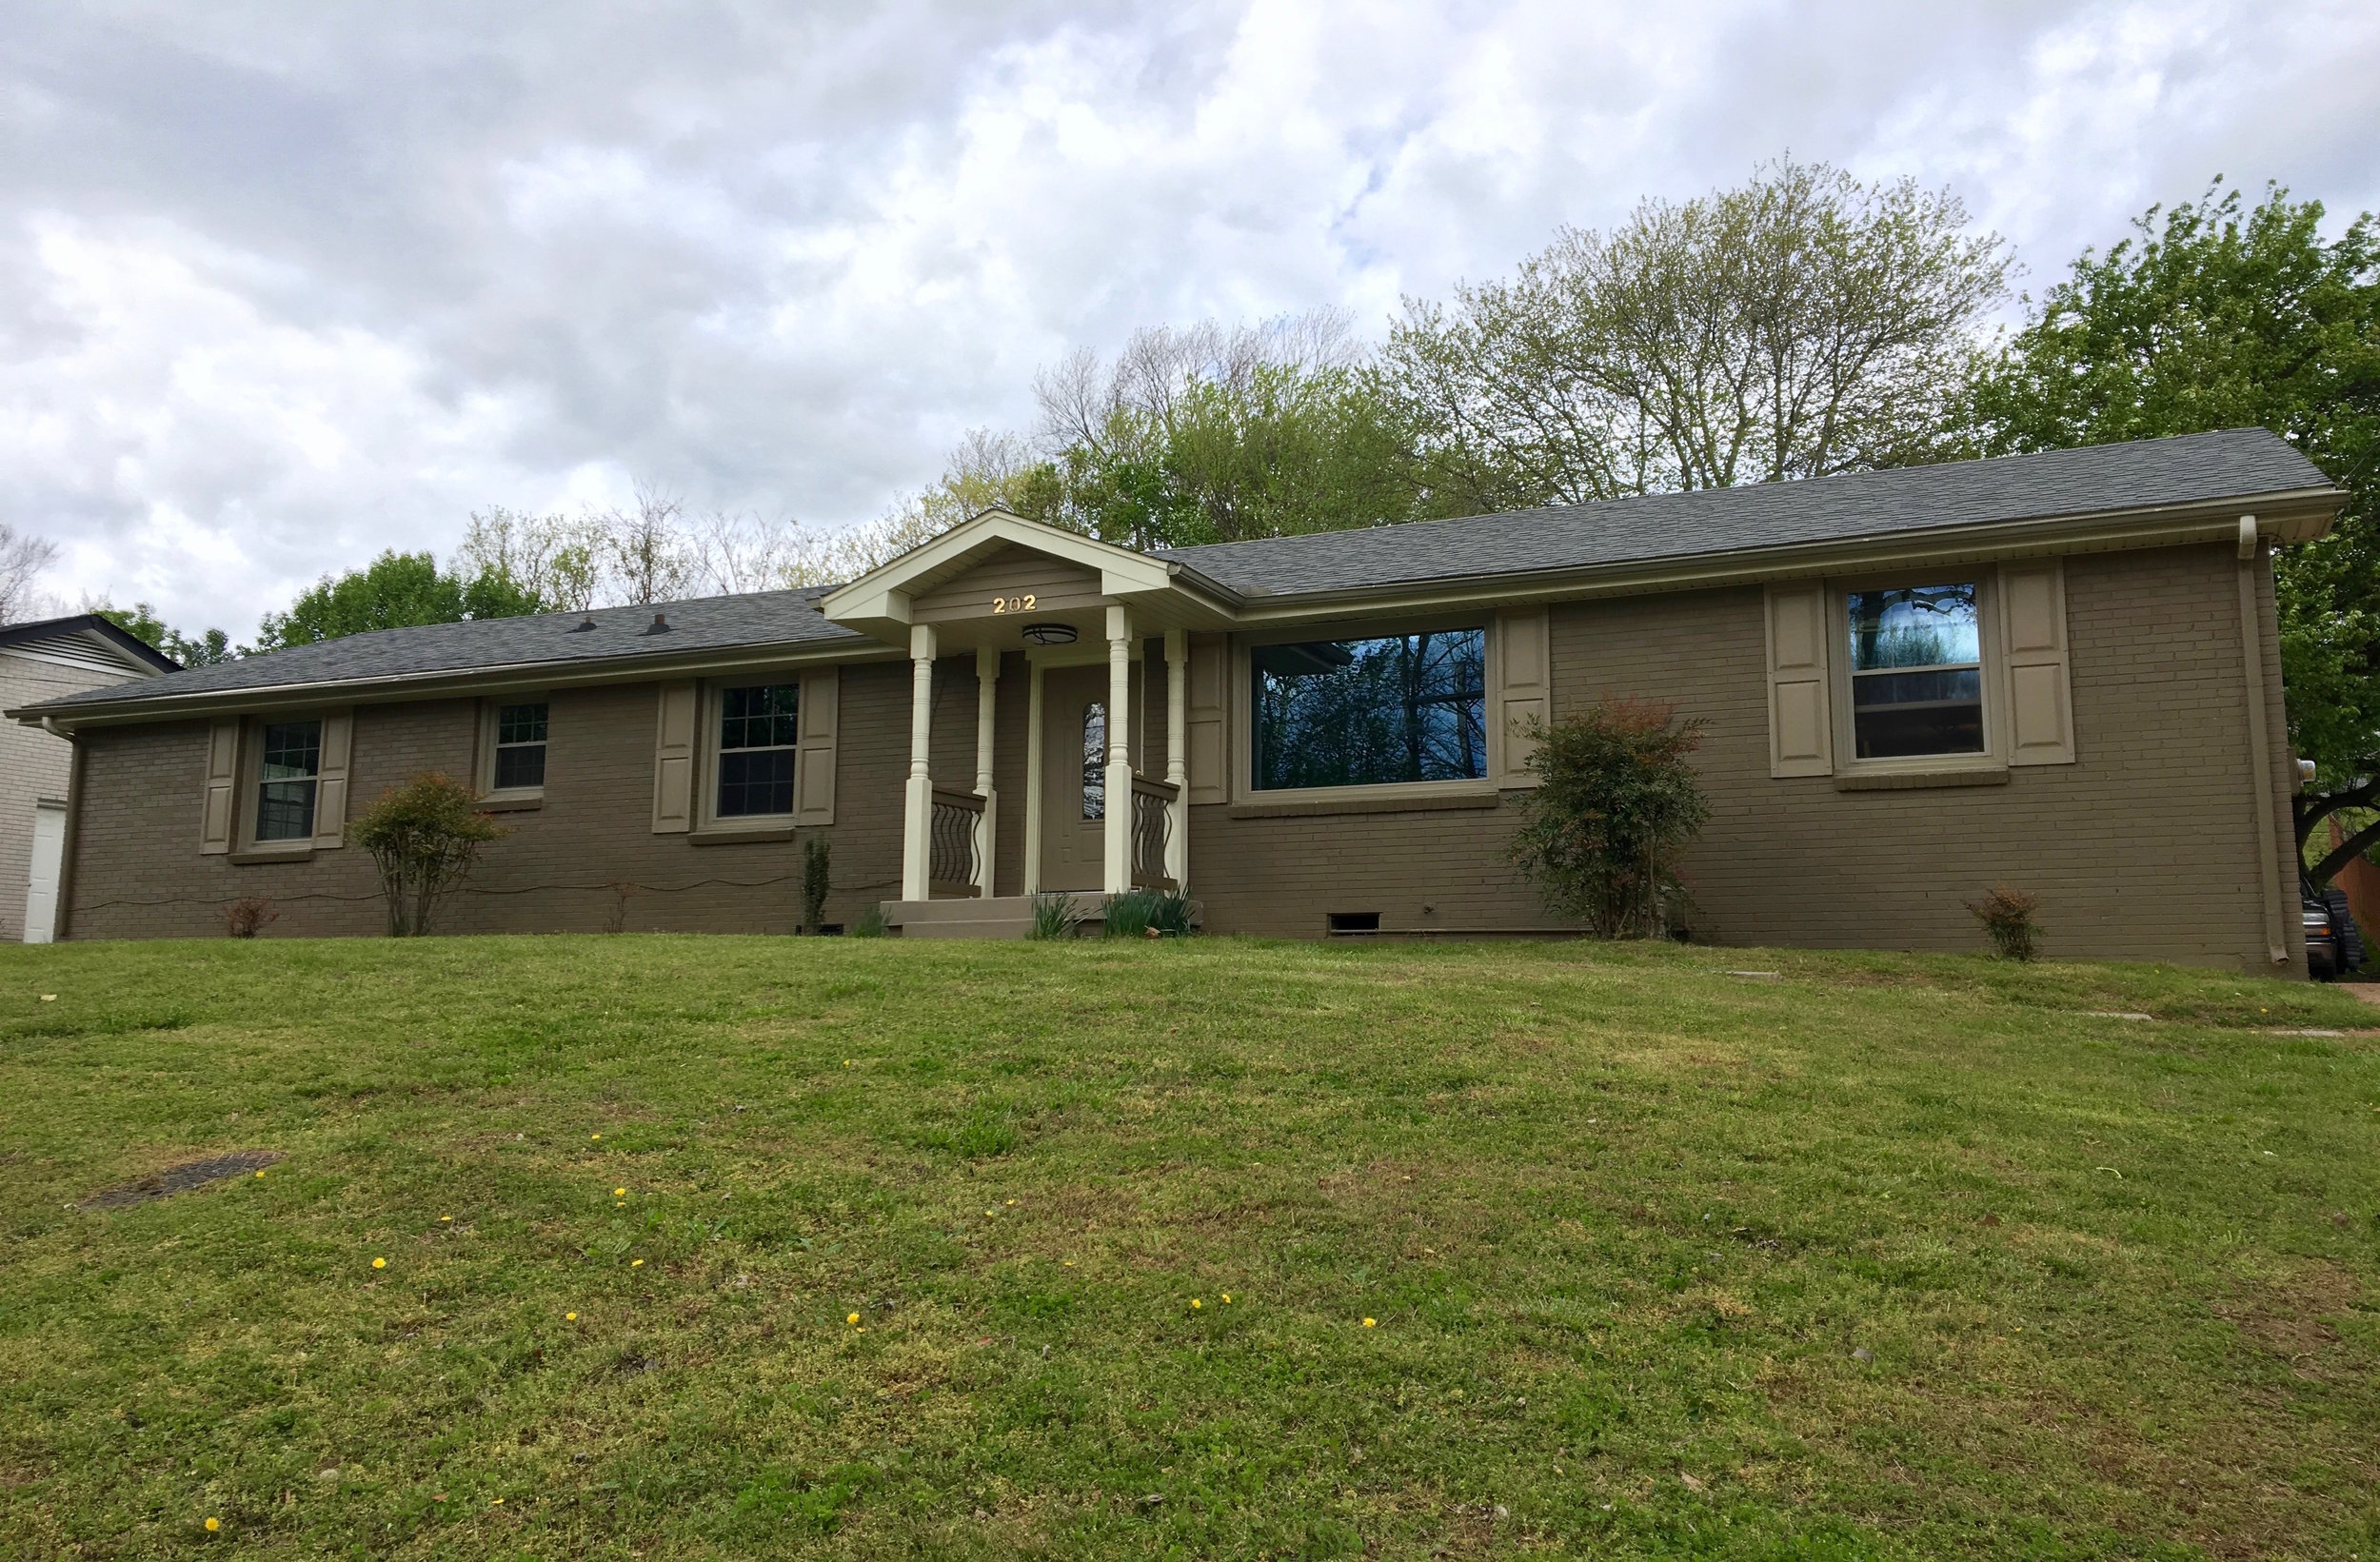 202 RENTED ANTIOCH: 202 Tusculum: House: 4 Br, 1.5 Ba